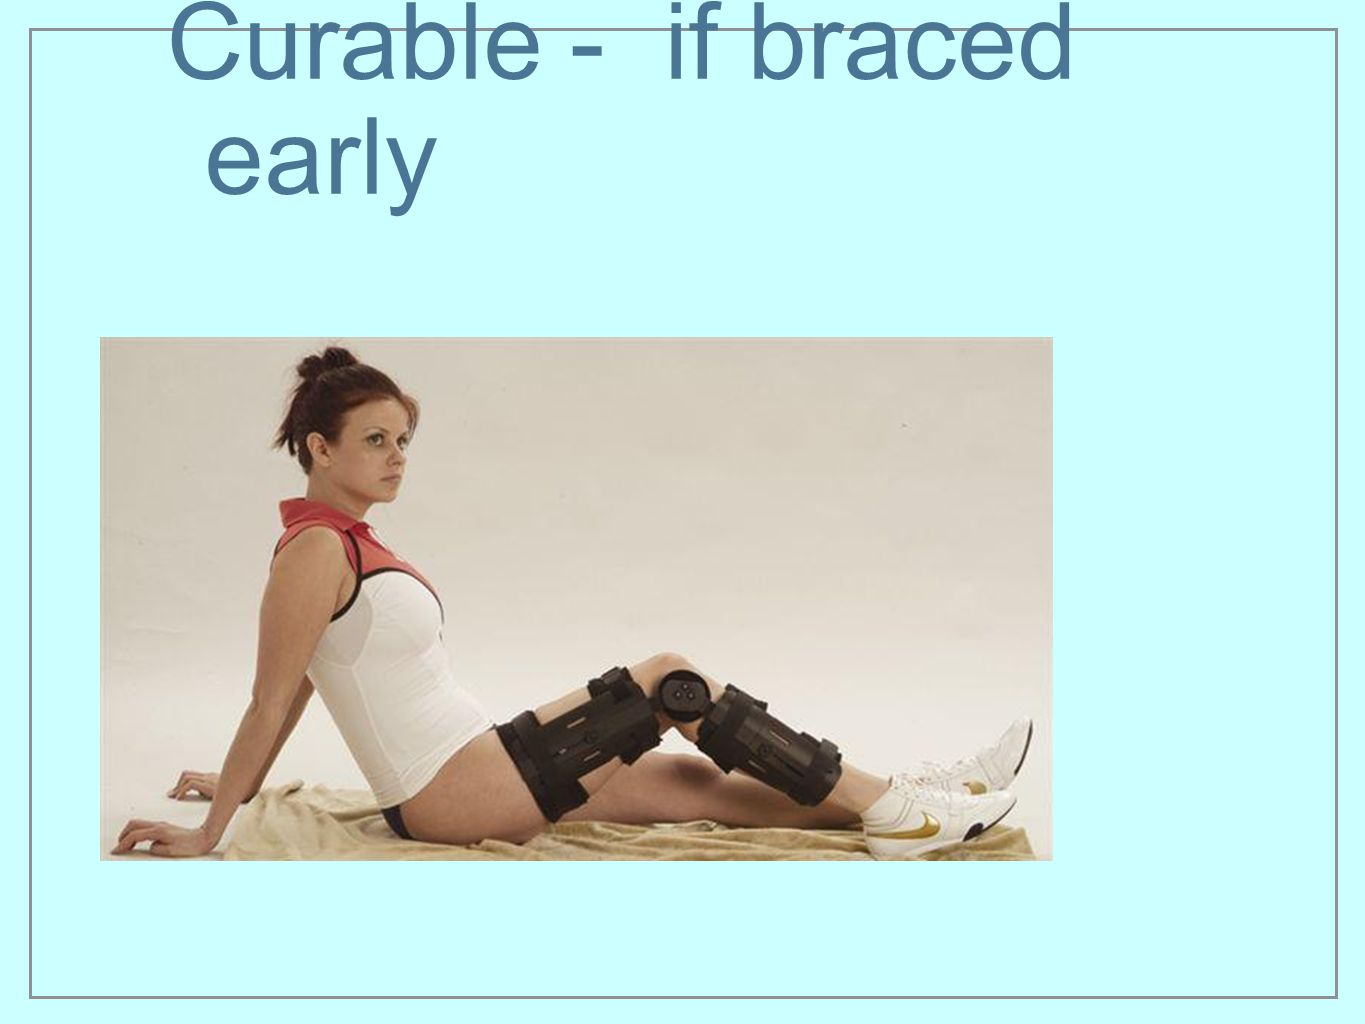 Curable - if braced early